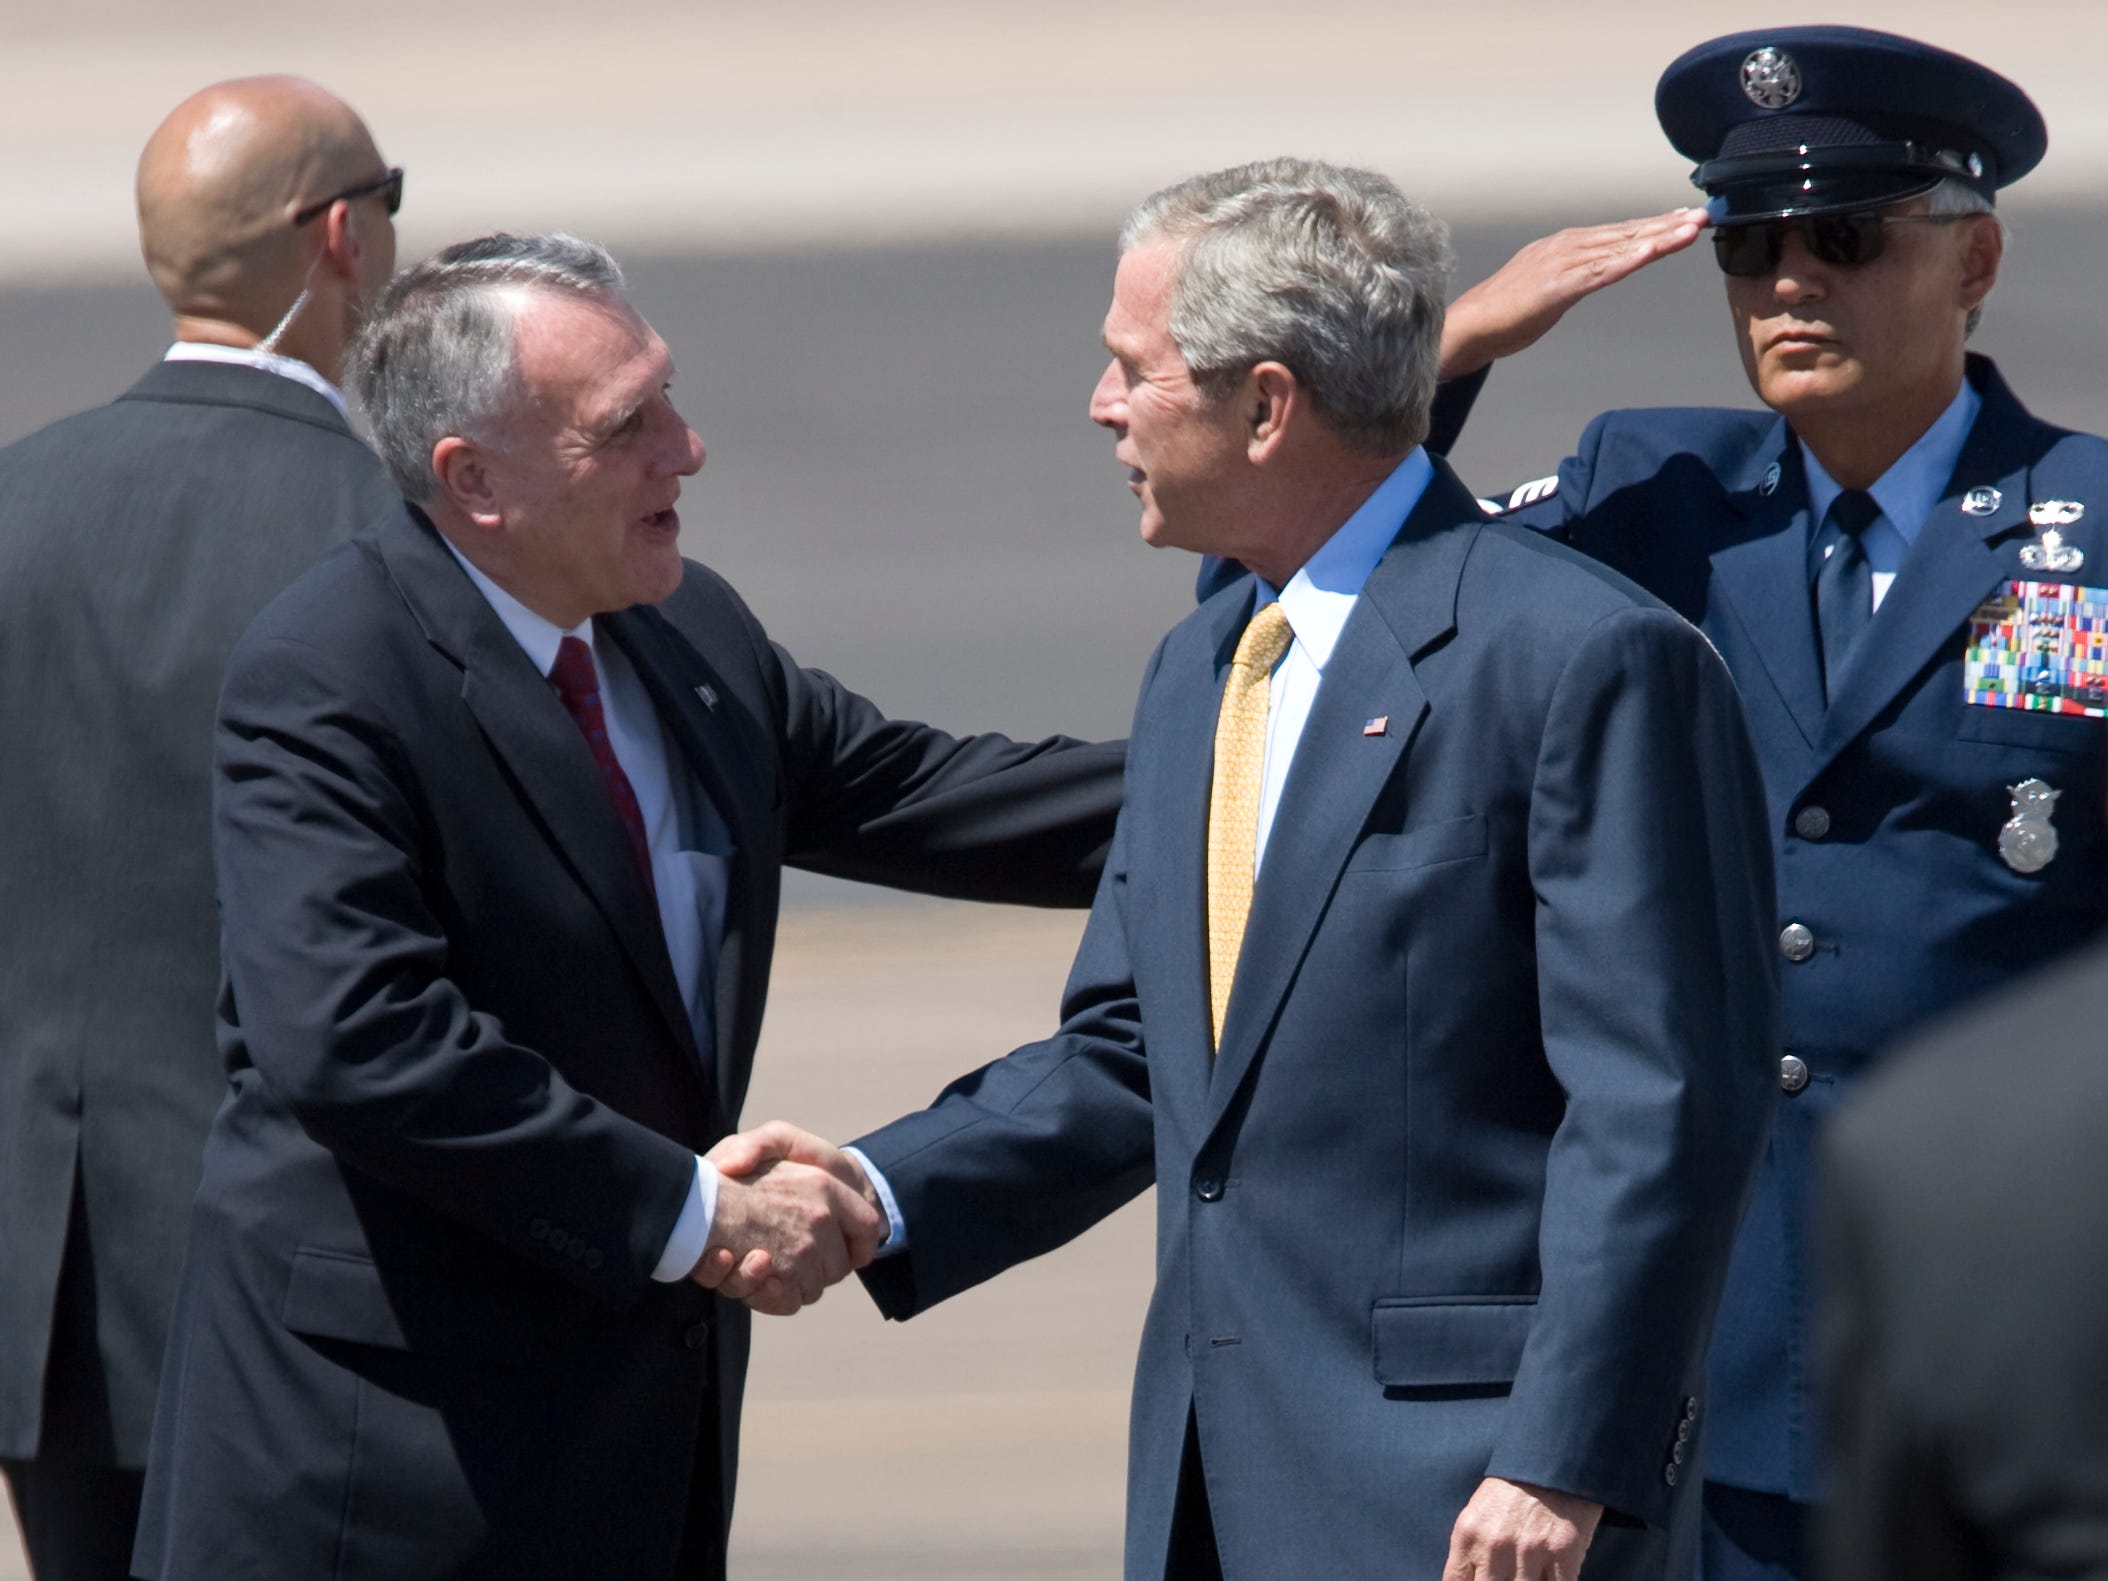 President George W. Bush, right, is greeted by Sen. Jon Kyl, left, after arriving at Sky Harbor International Airport, May 27, 2008.